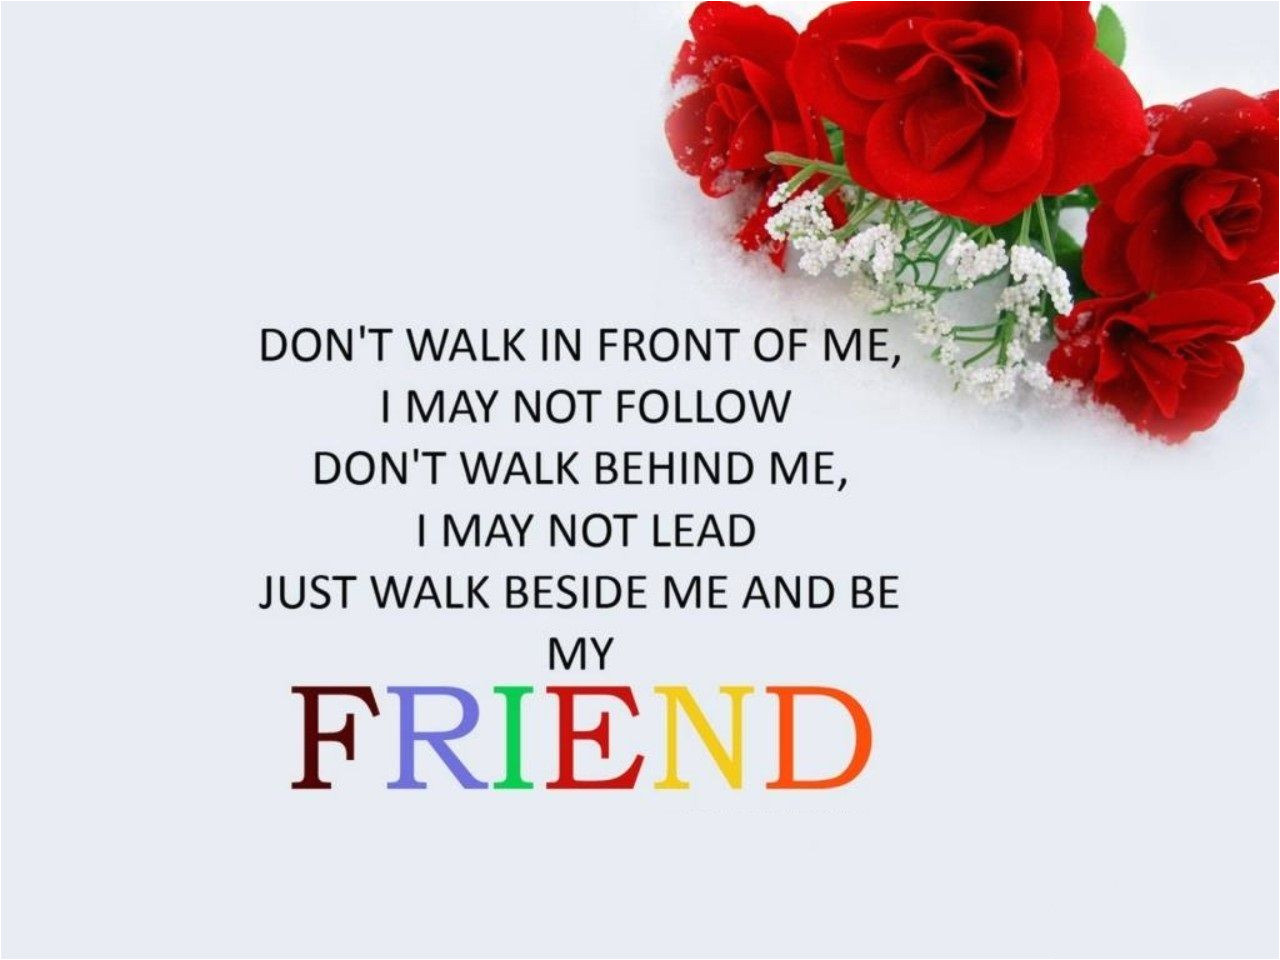 Greeting Card Quotes for Friends Wise Quote Happy Friendship Day Greeting Card Template Red